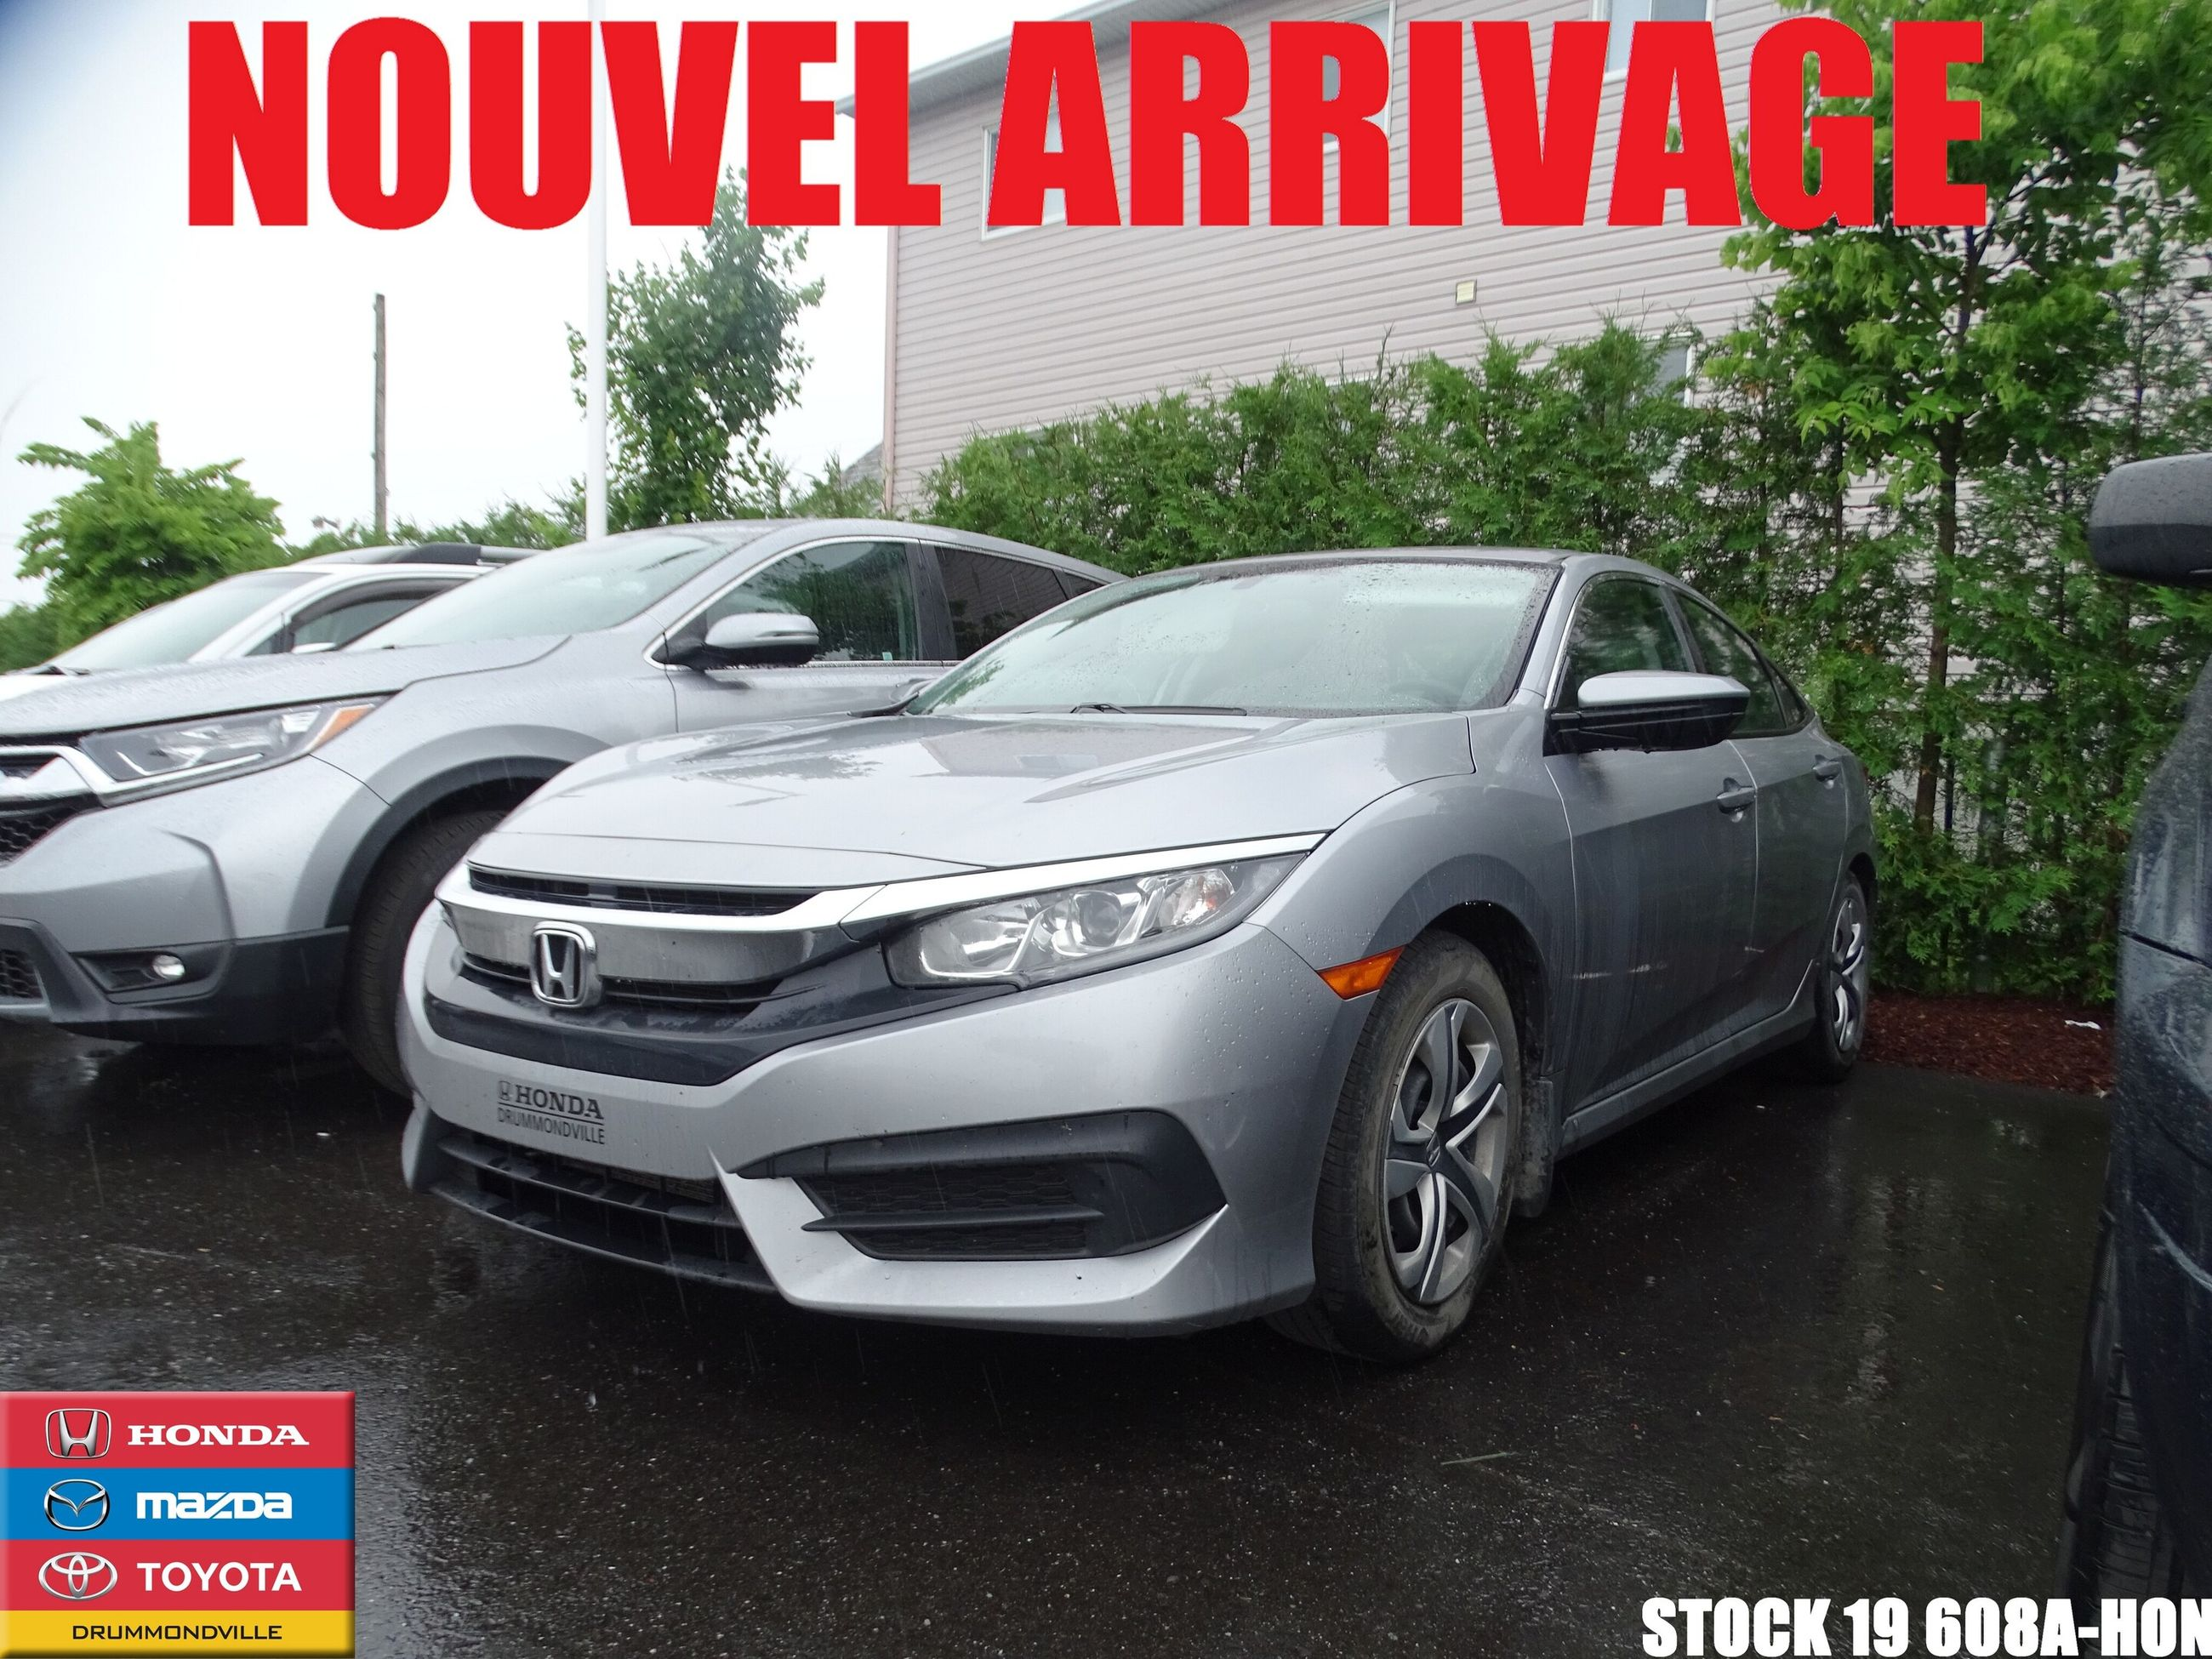 Mazda Drummondville | Pre-owned 2016 Honda Civic LX for Sale